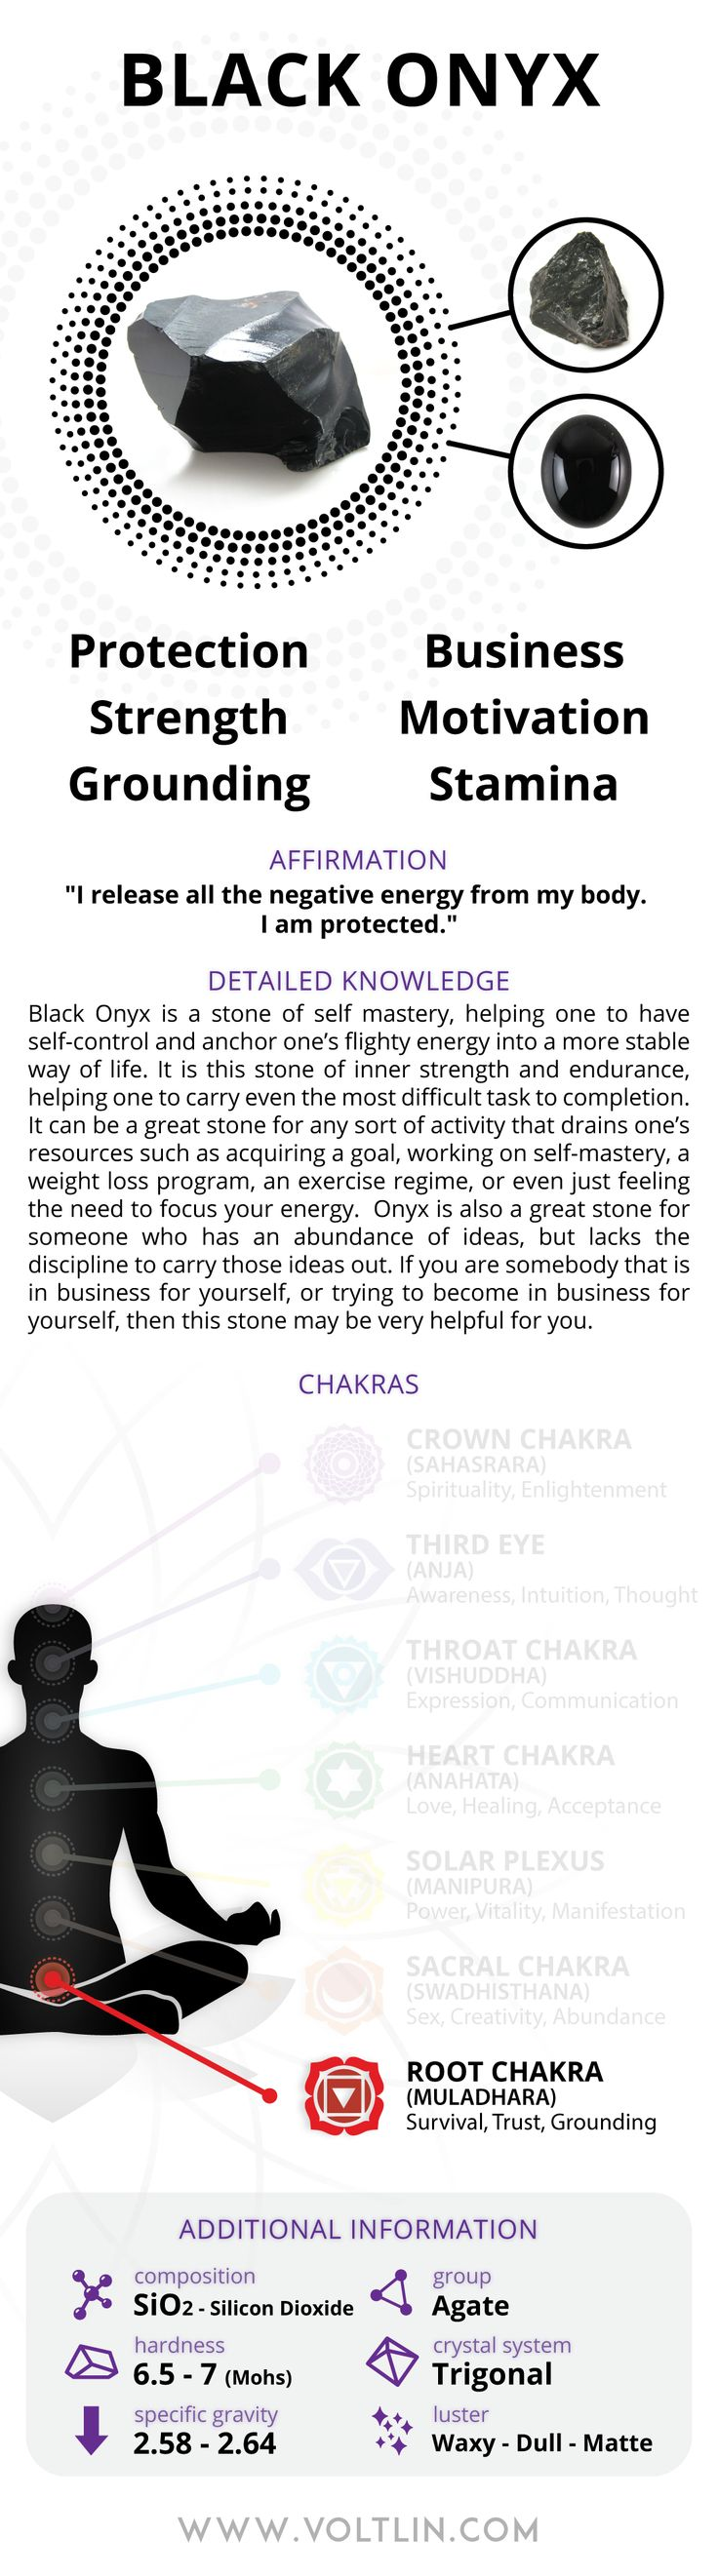 Express Shipping: 2-6 days (ships out within 1 business day) Warranty: Free repairs for up to 6 months Description Black Onyx is a stone of self-mastery, helping one to have self-control and anchor on